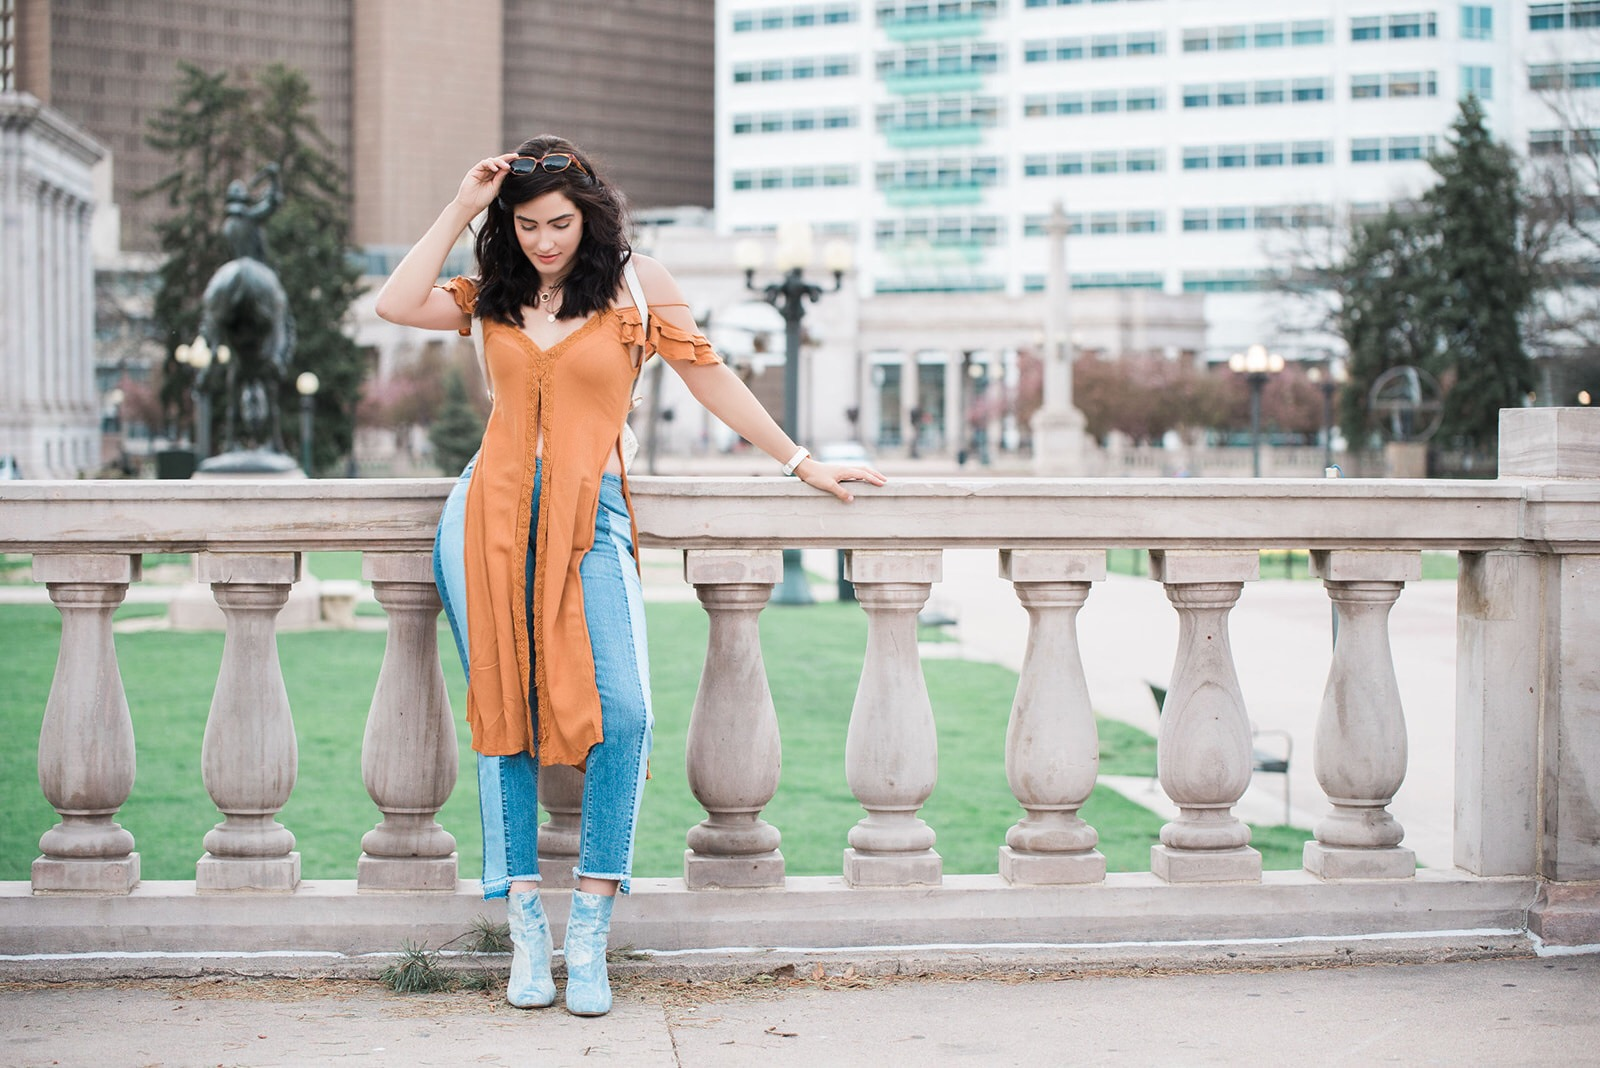 Fashion | The Denver Look